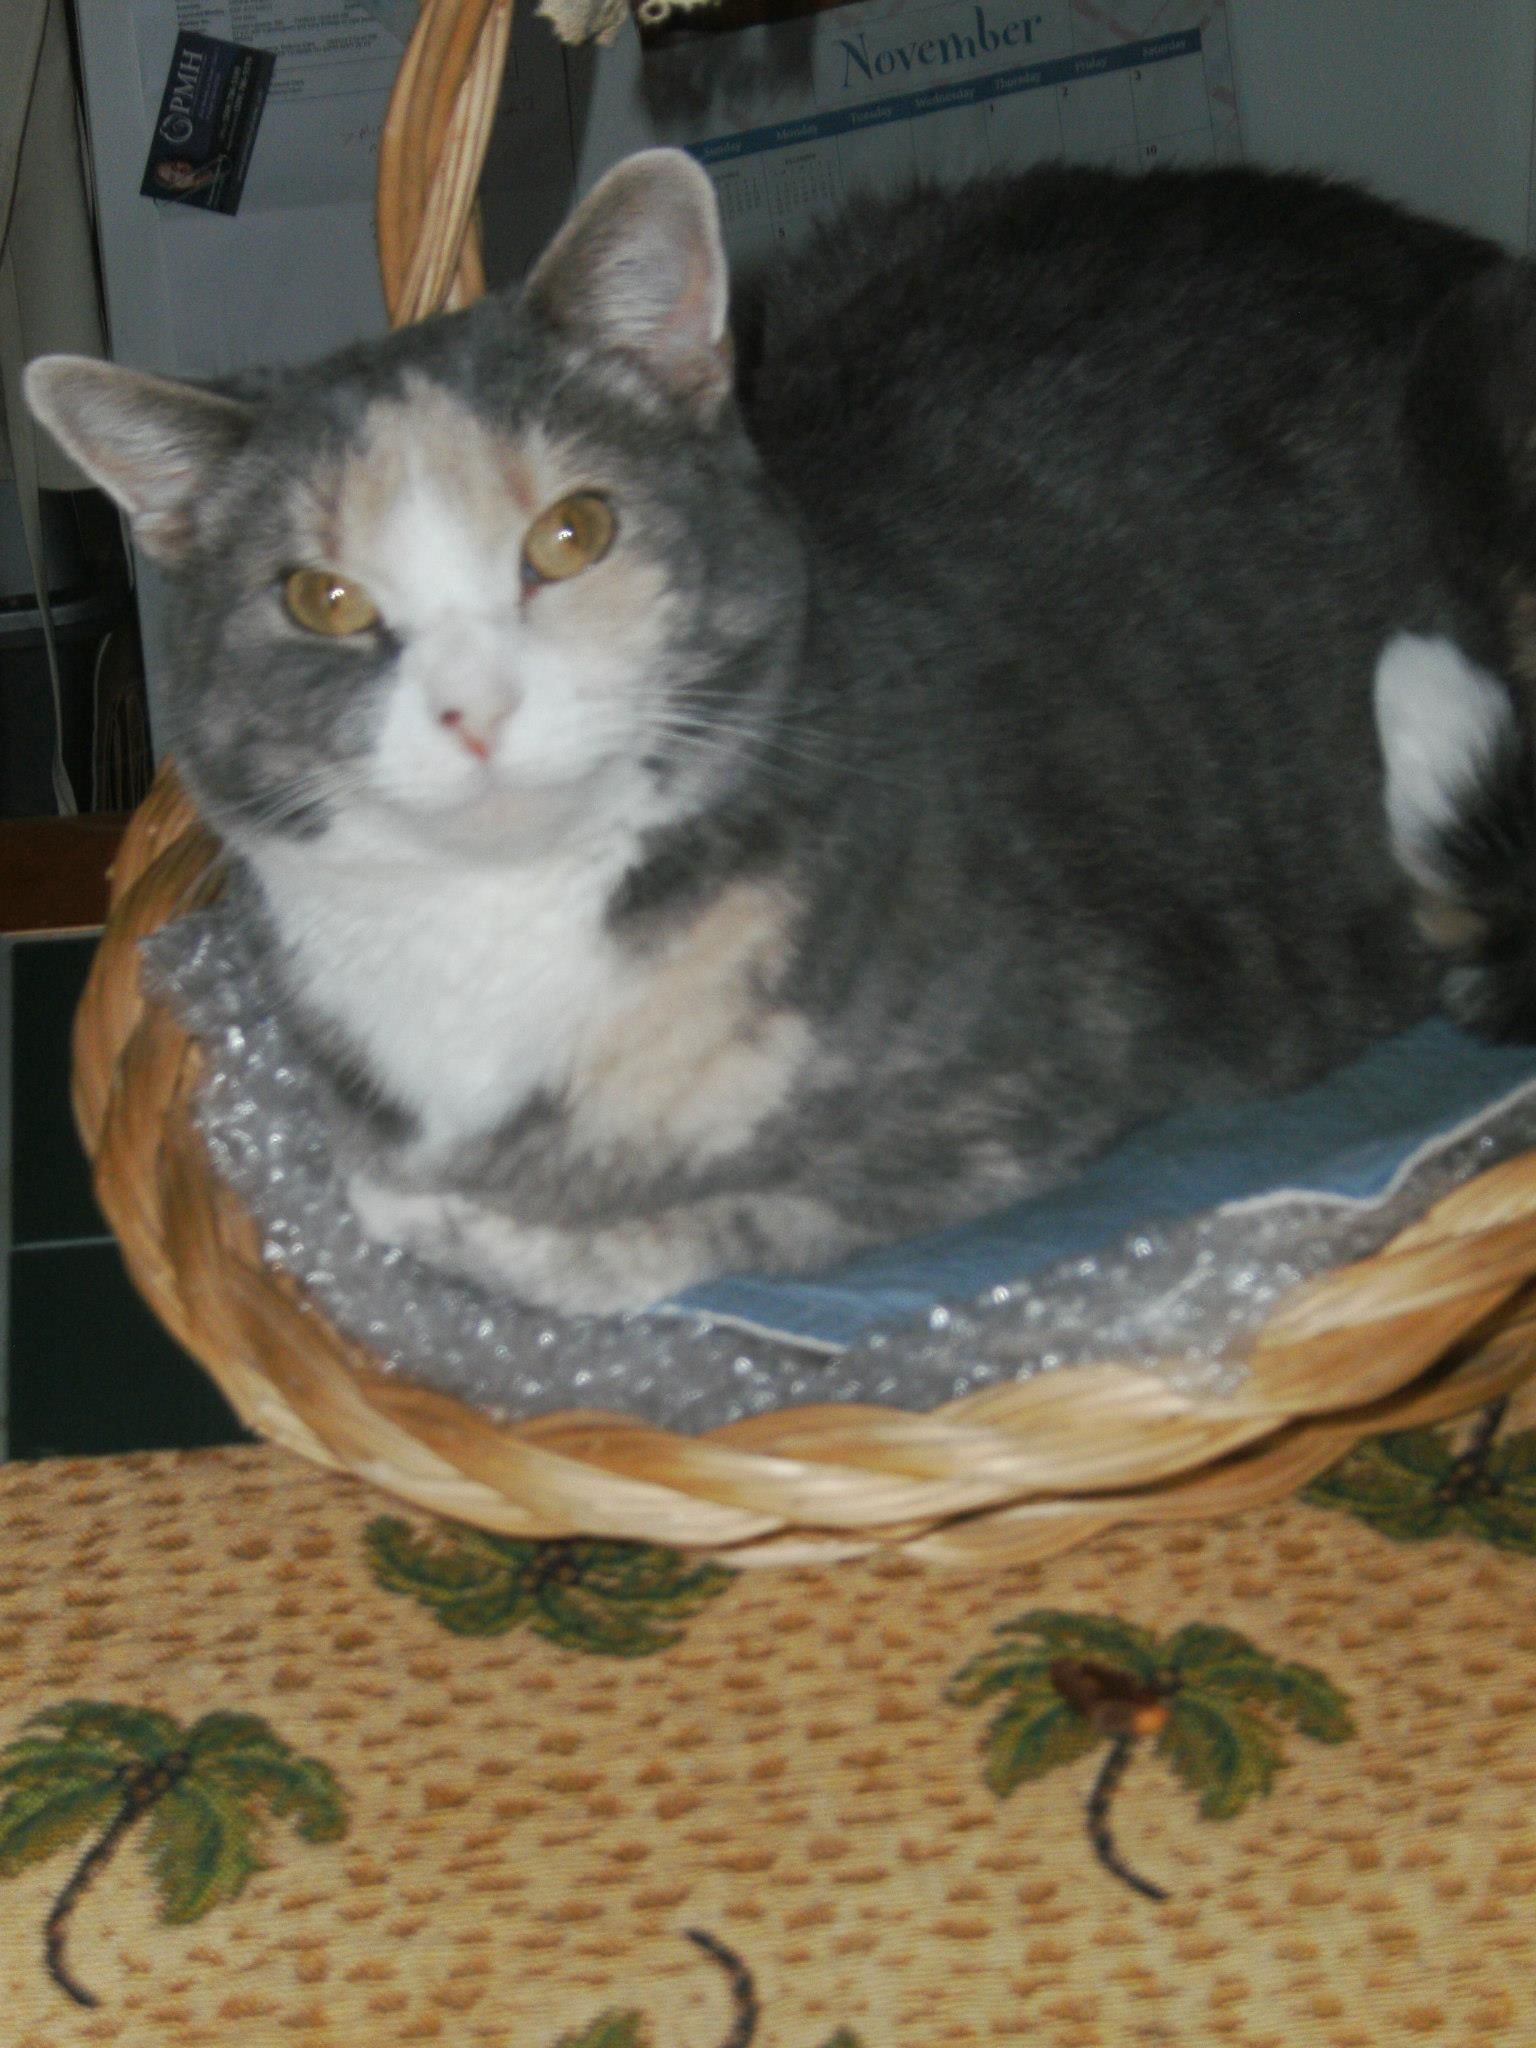 Lili our kitty. Kitty in a basket.